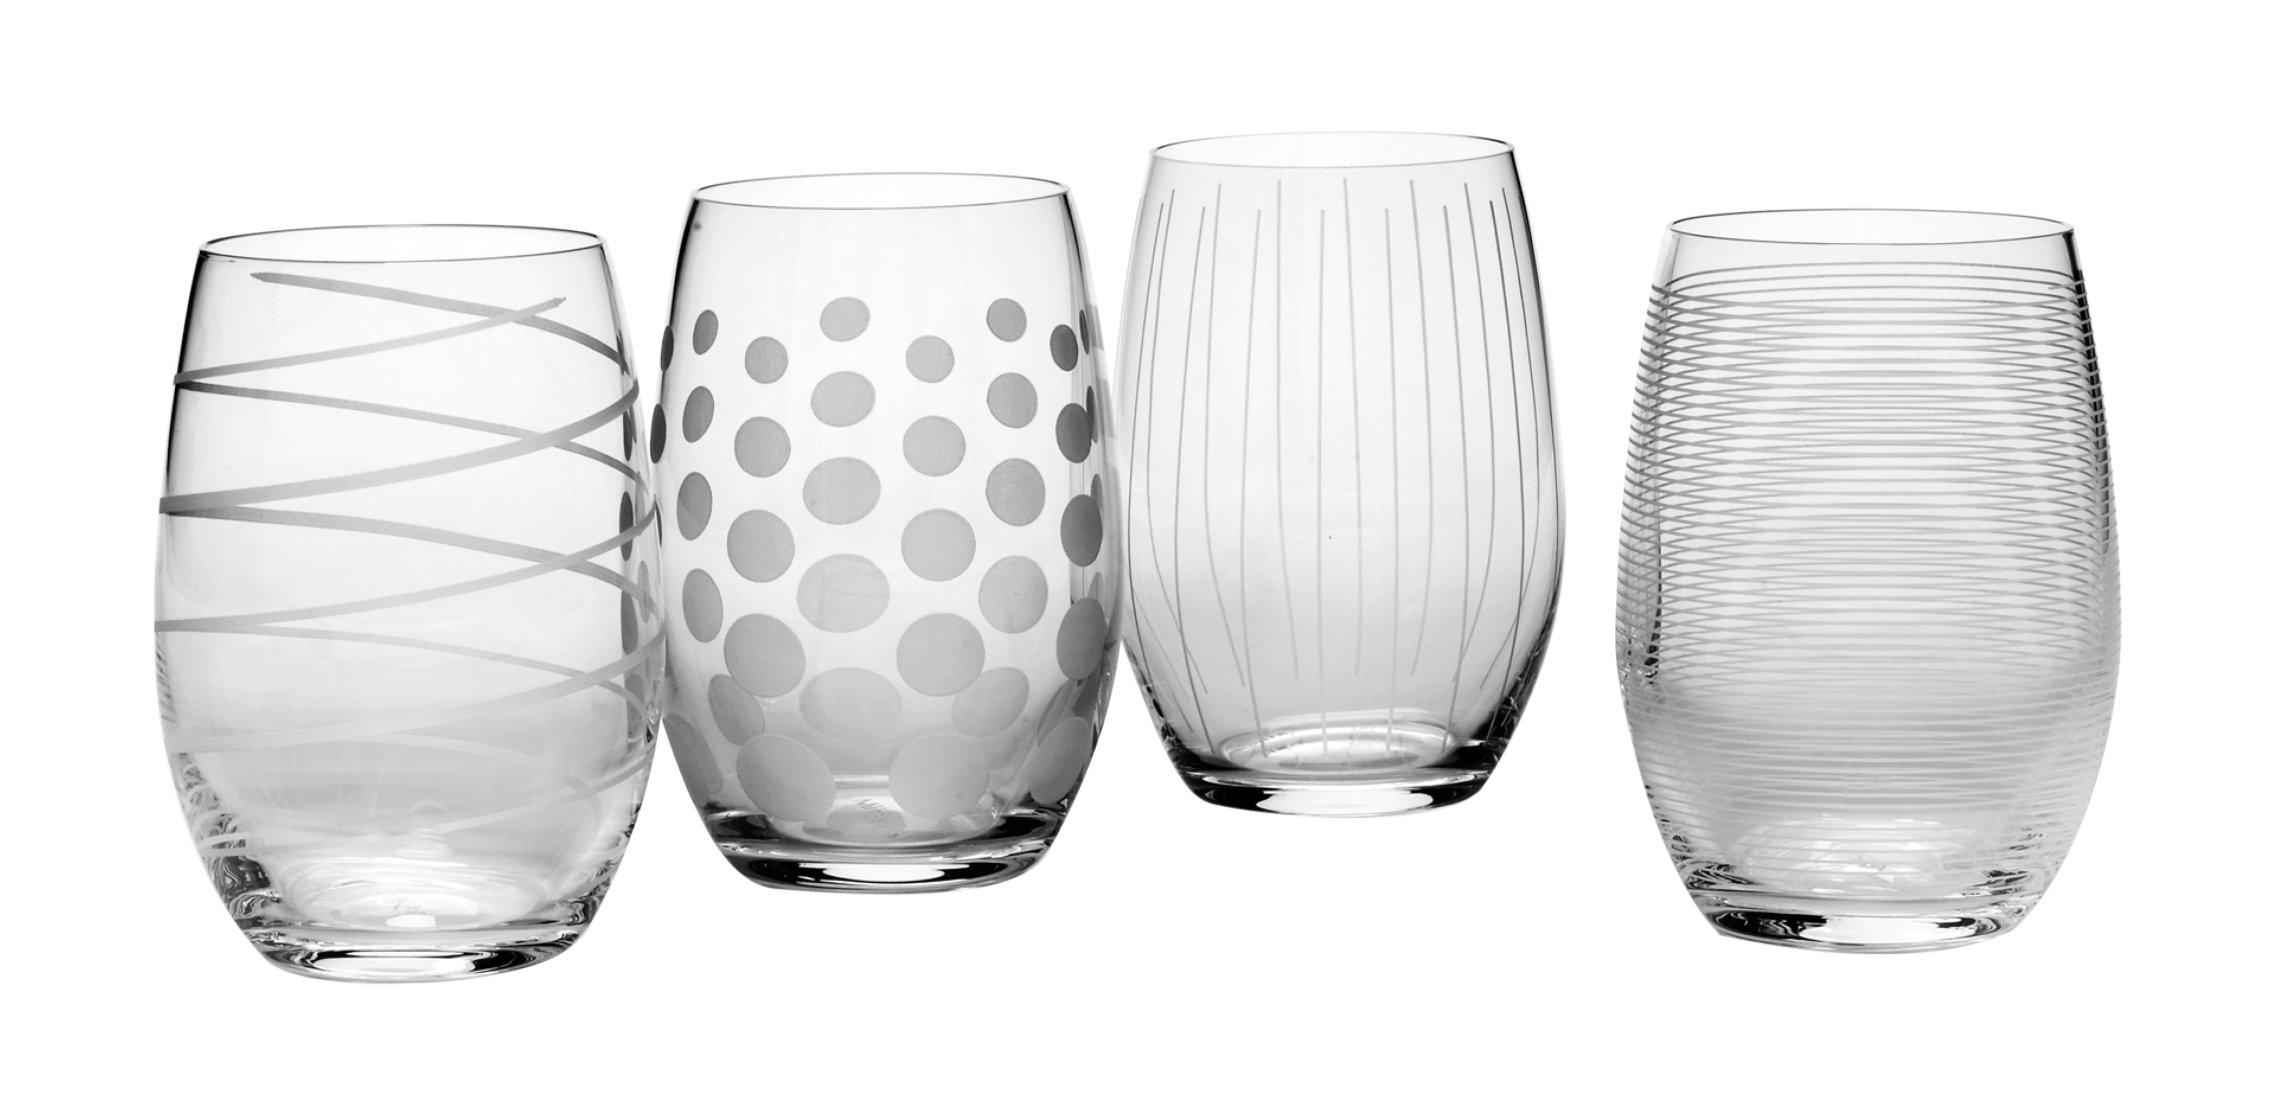 Mikasa Cheers Stemless Wine Glass, 17-Ounce, Set of 4 by Mikasa